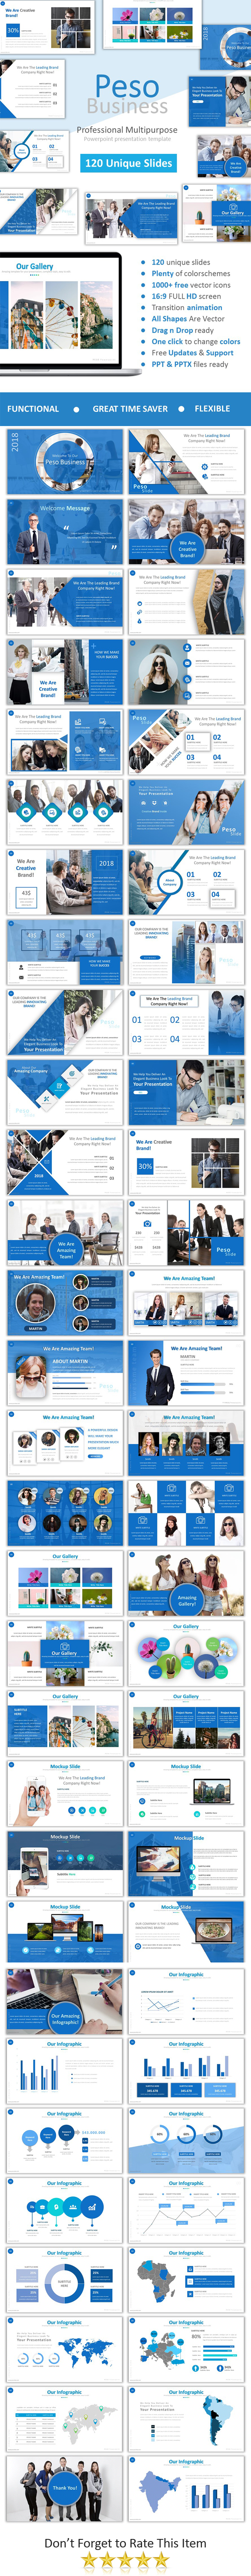 GraphicRiver Peso Powerpoint 20970903